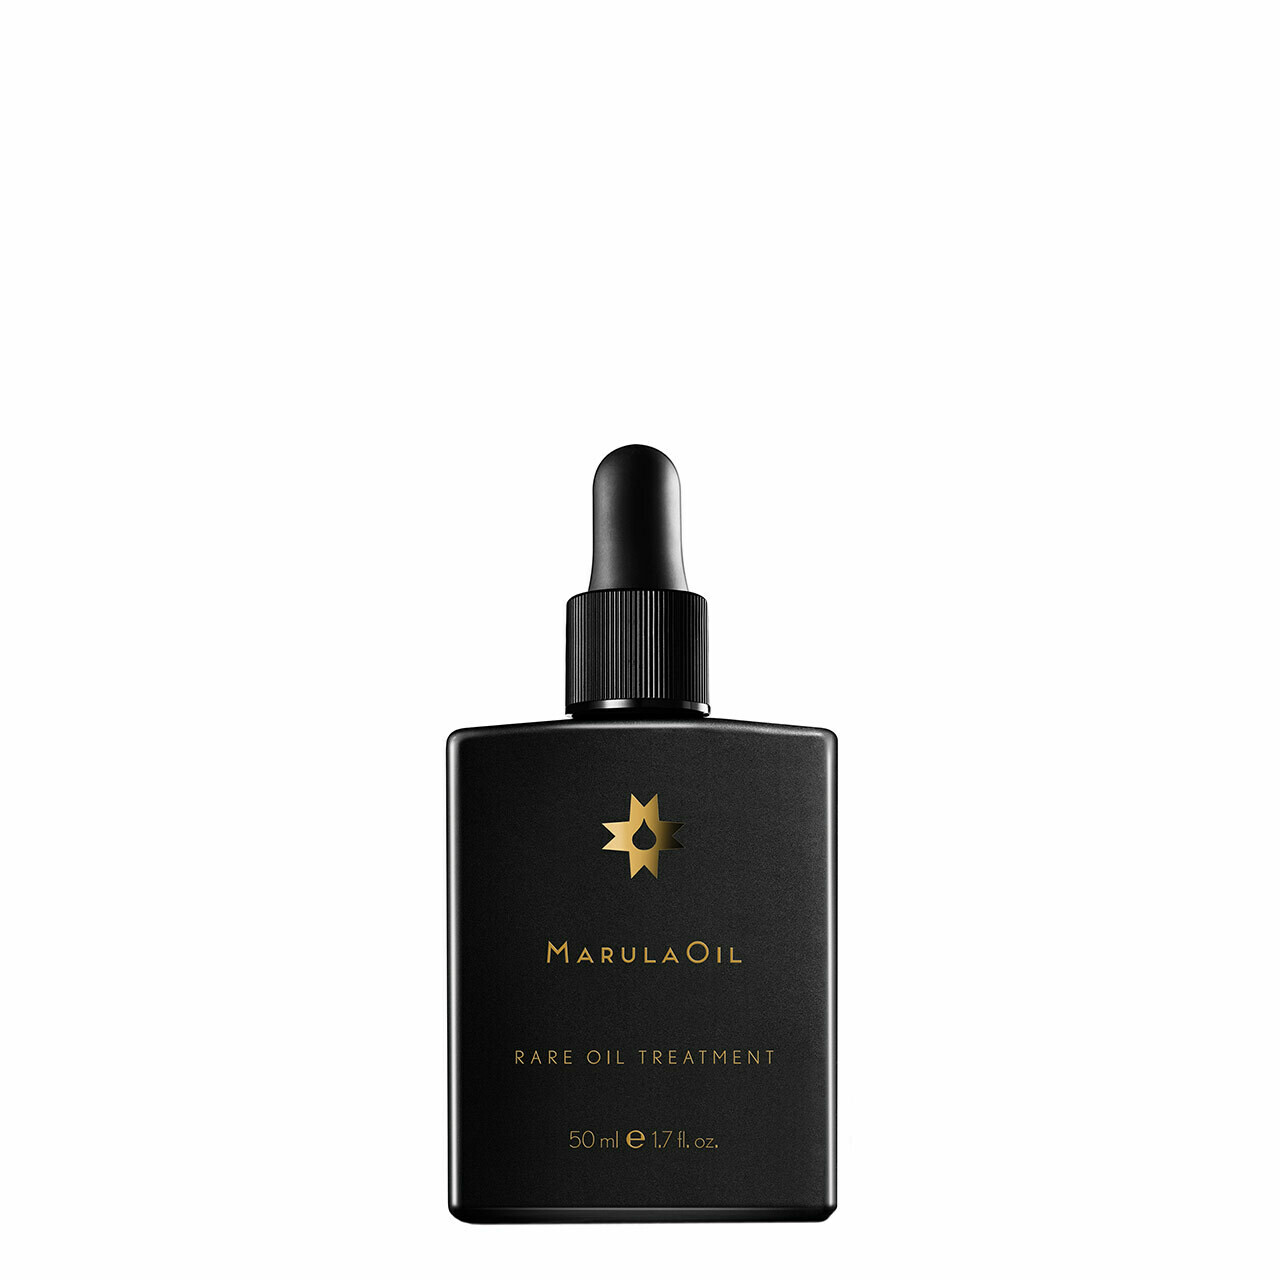 Rare Oil Treatment 50ml